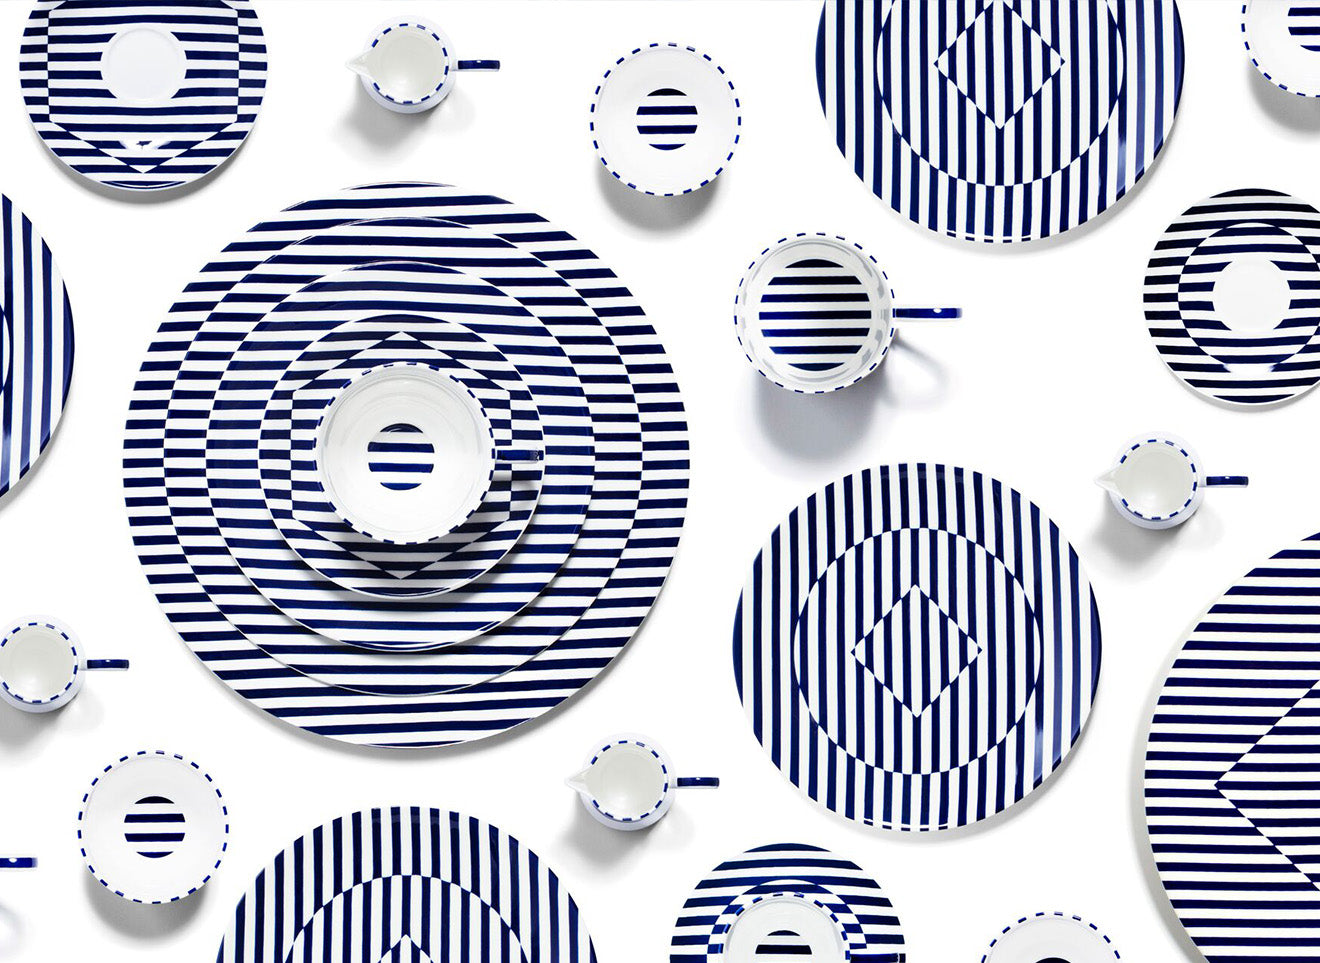 Richard Brendon meets Patternity, blue and white striped crockery and teaware sets